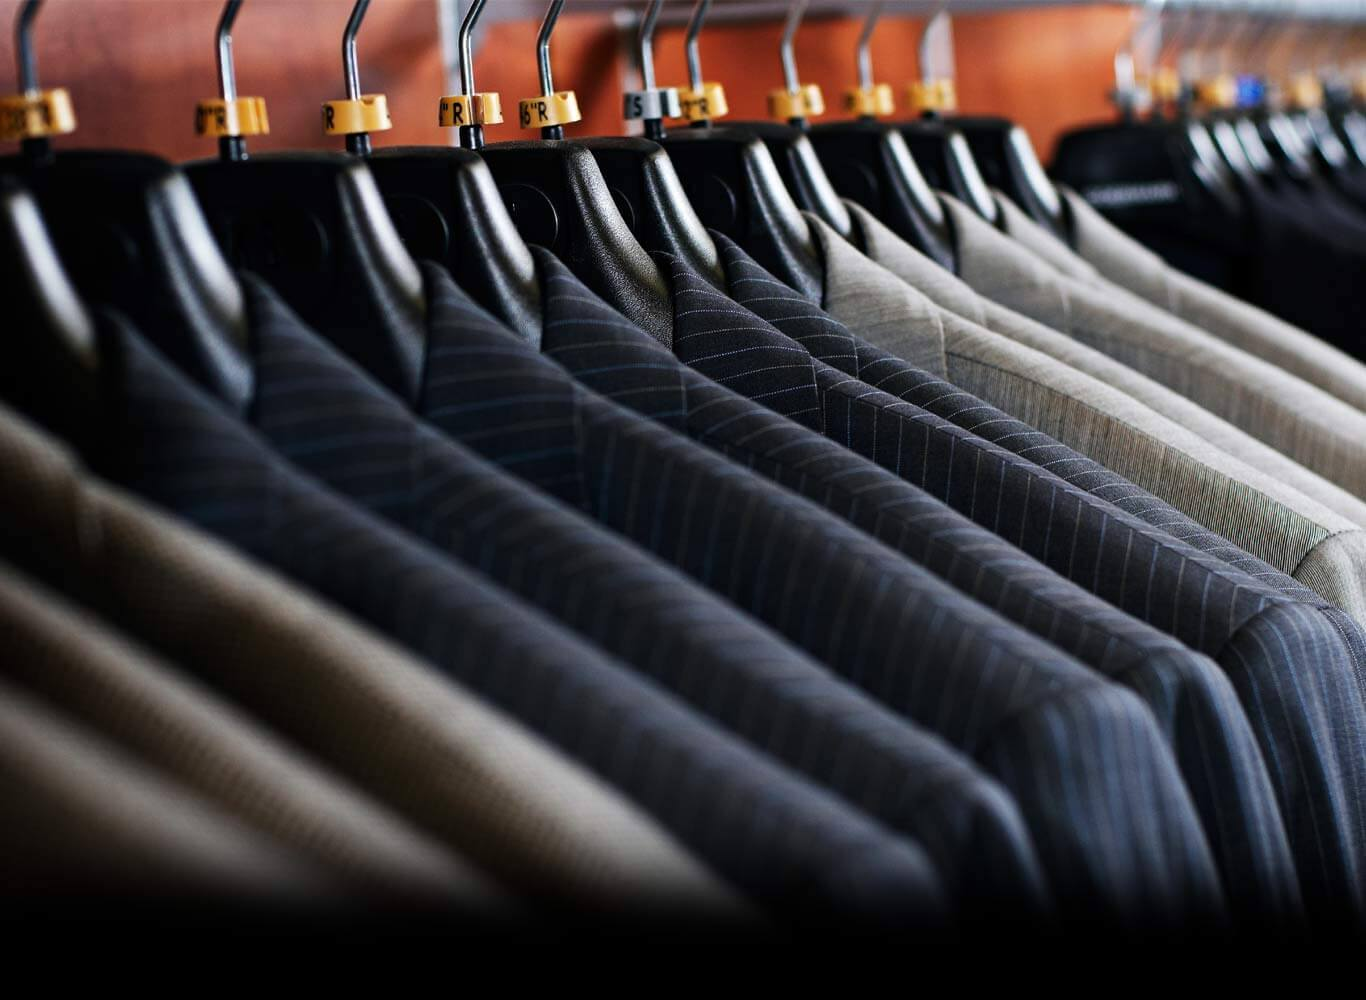 Finding the right suit for corporate #events